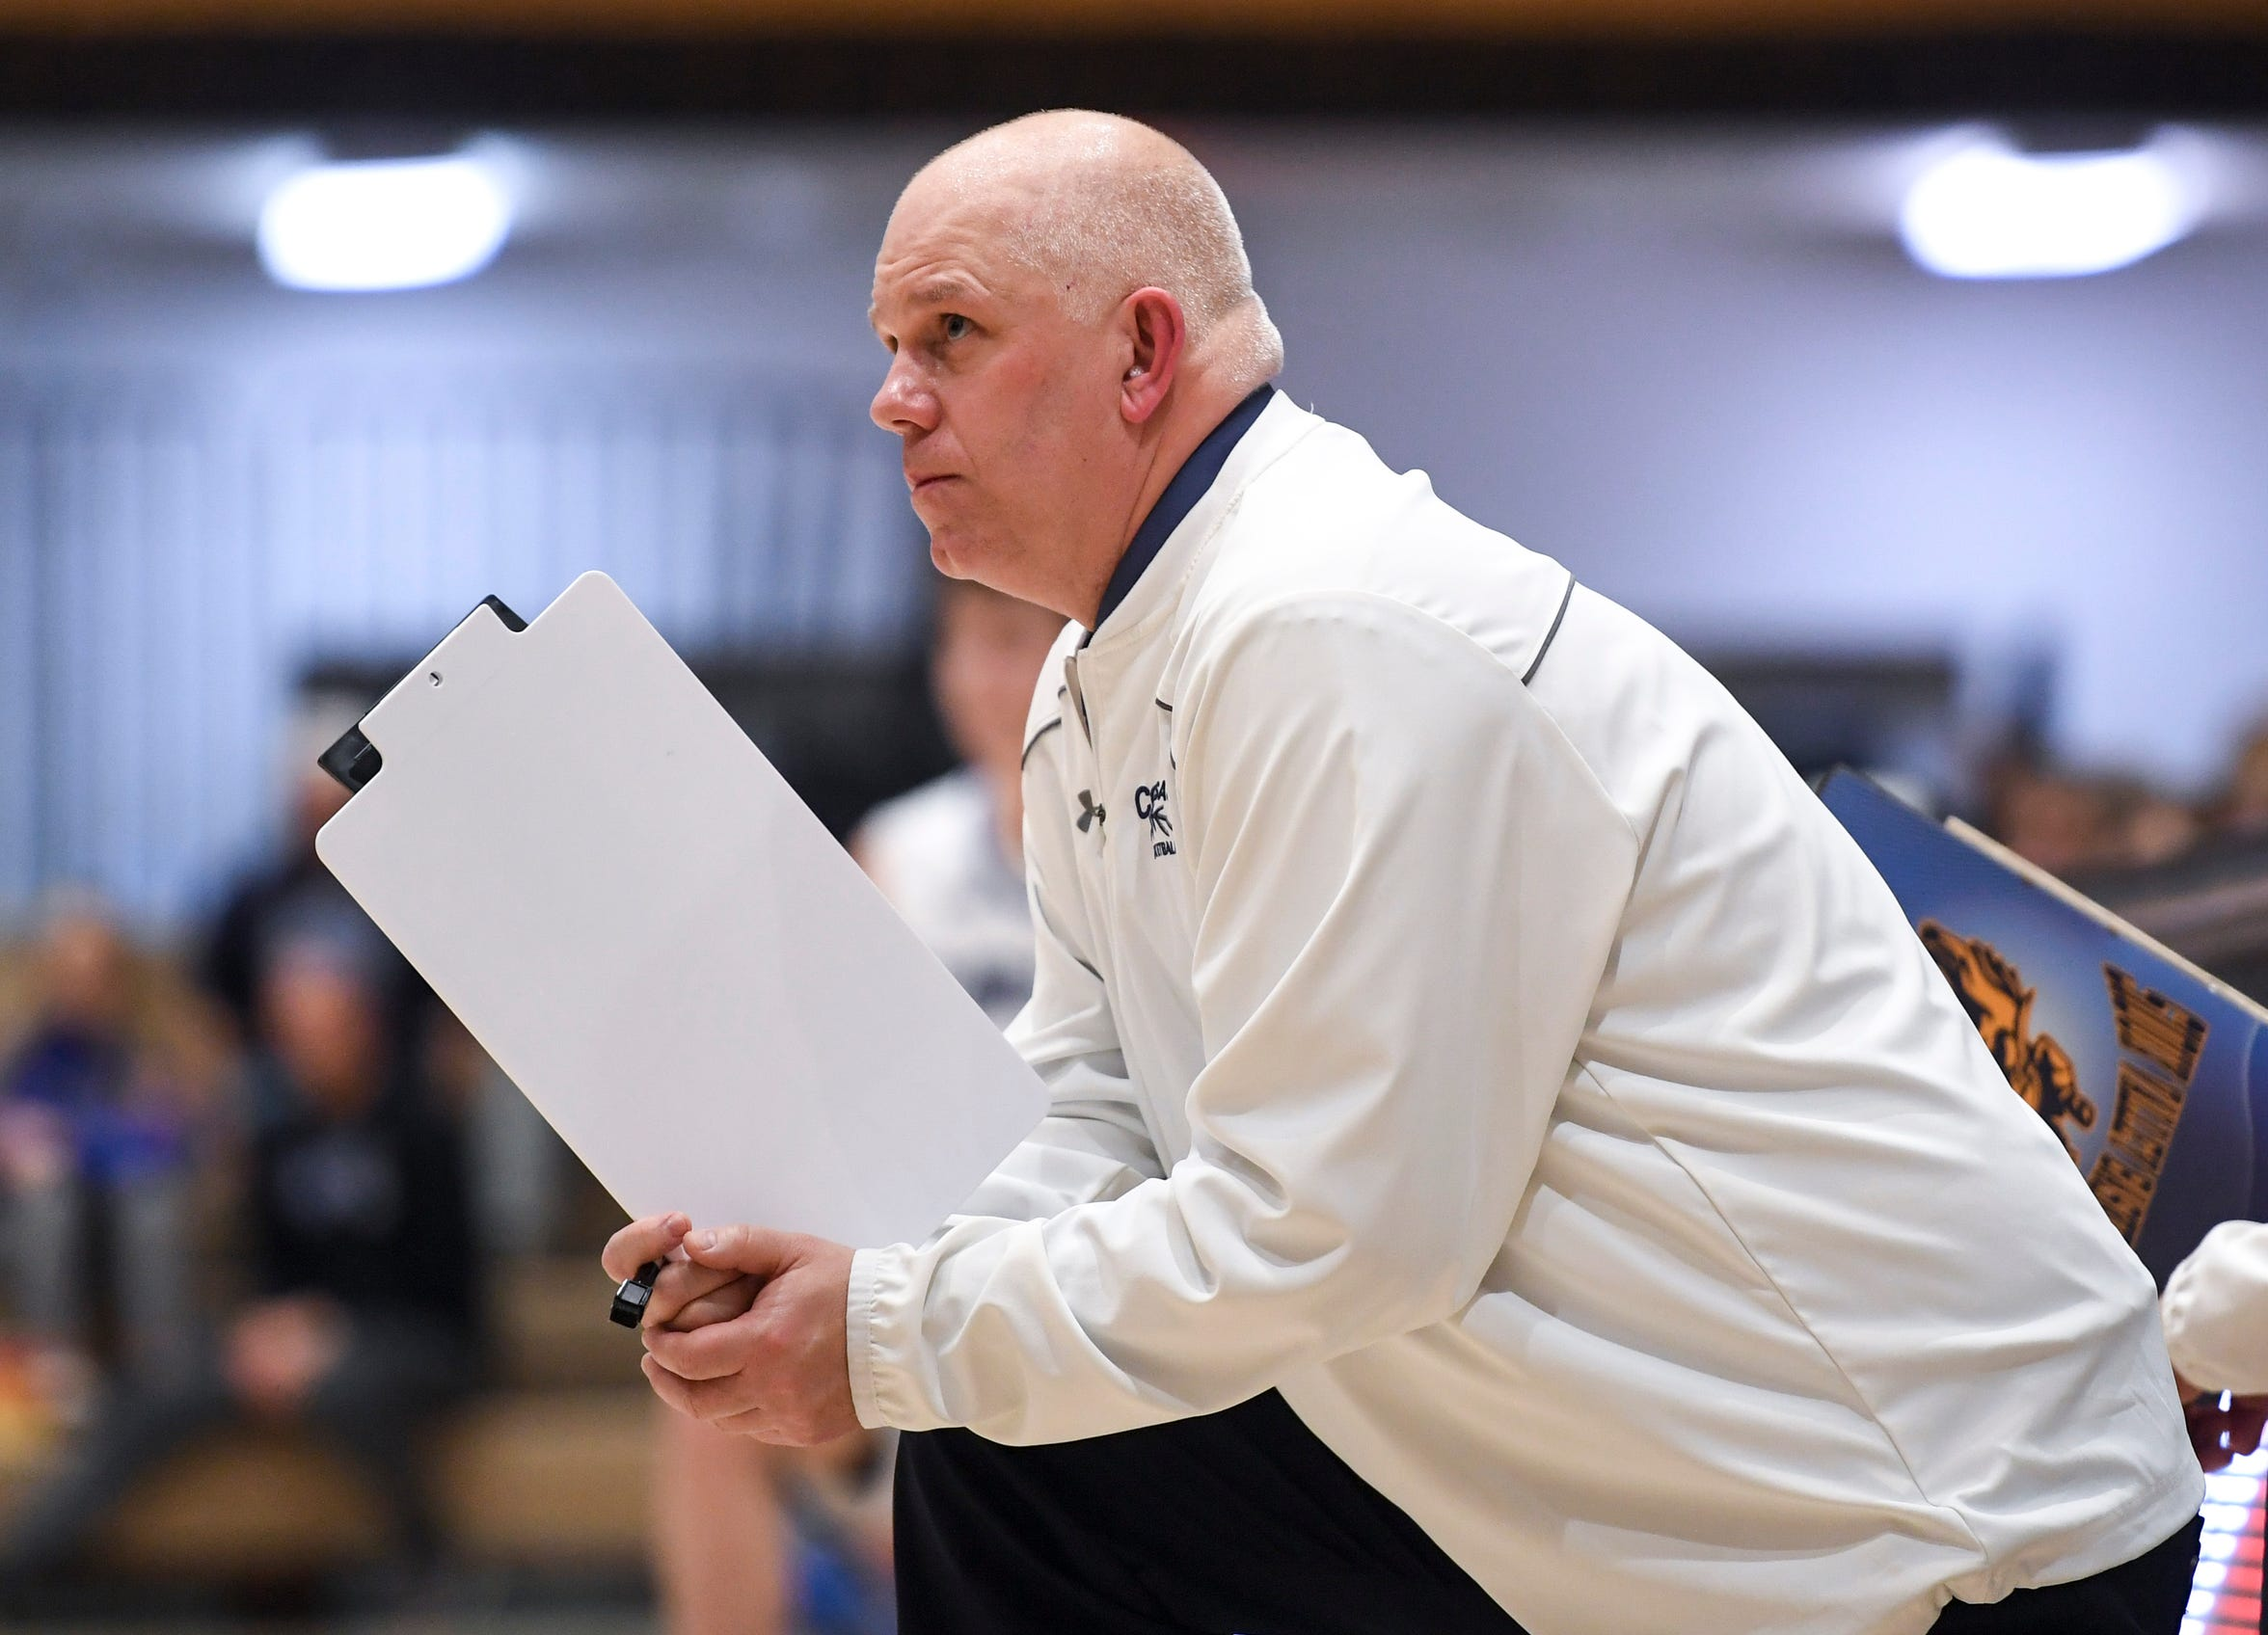 Sioux Valley head coach Bill Vincent watches his team play St. Thomas More during the game on Saturday, Jan. 25, 2020 at the Corn Palace in Mitchell, S.D.